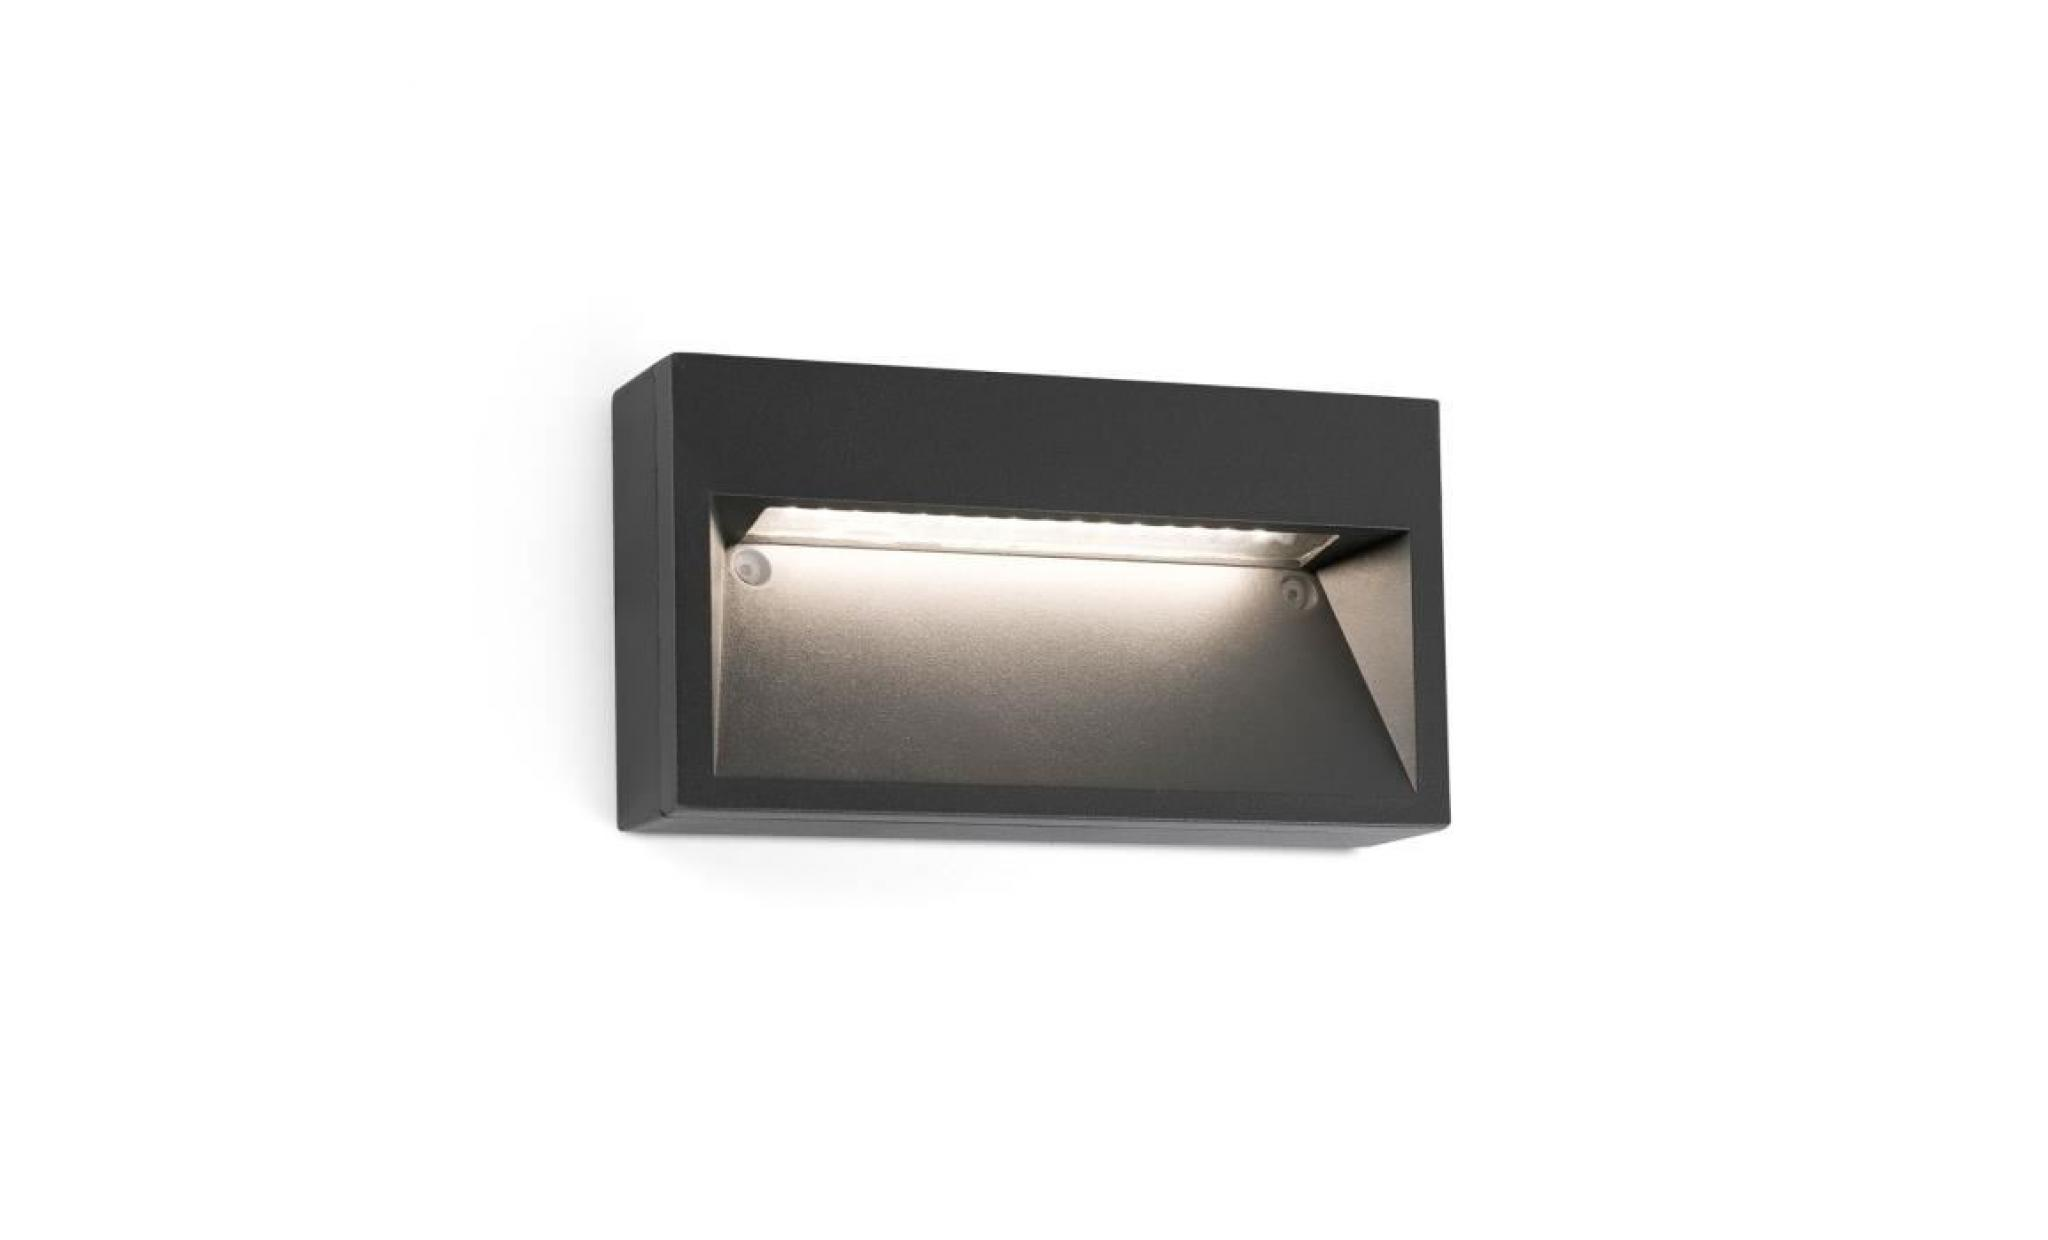 Eclairage Led Encastrable Exterieur Spot Exterieur Encastrable Spot Encastrable Ext Rieur Led